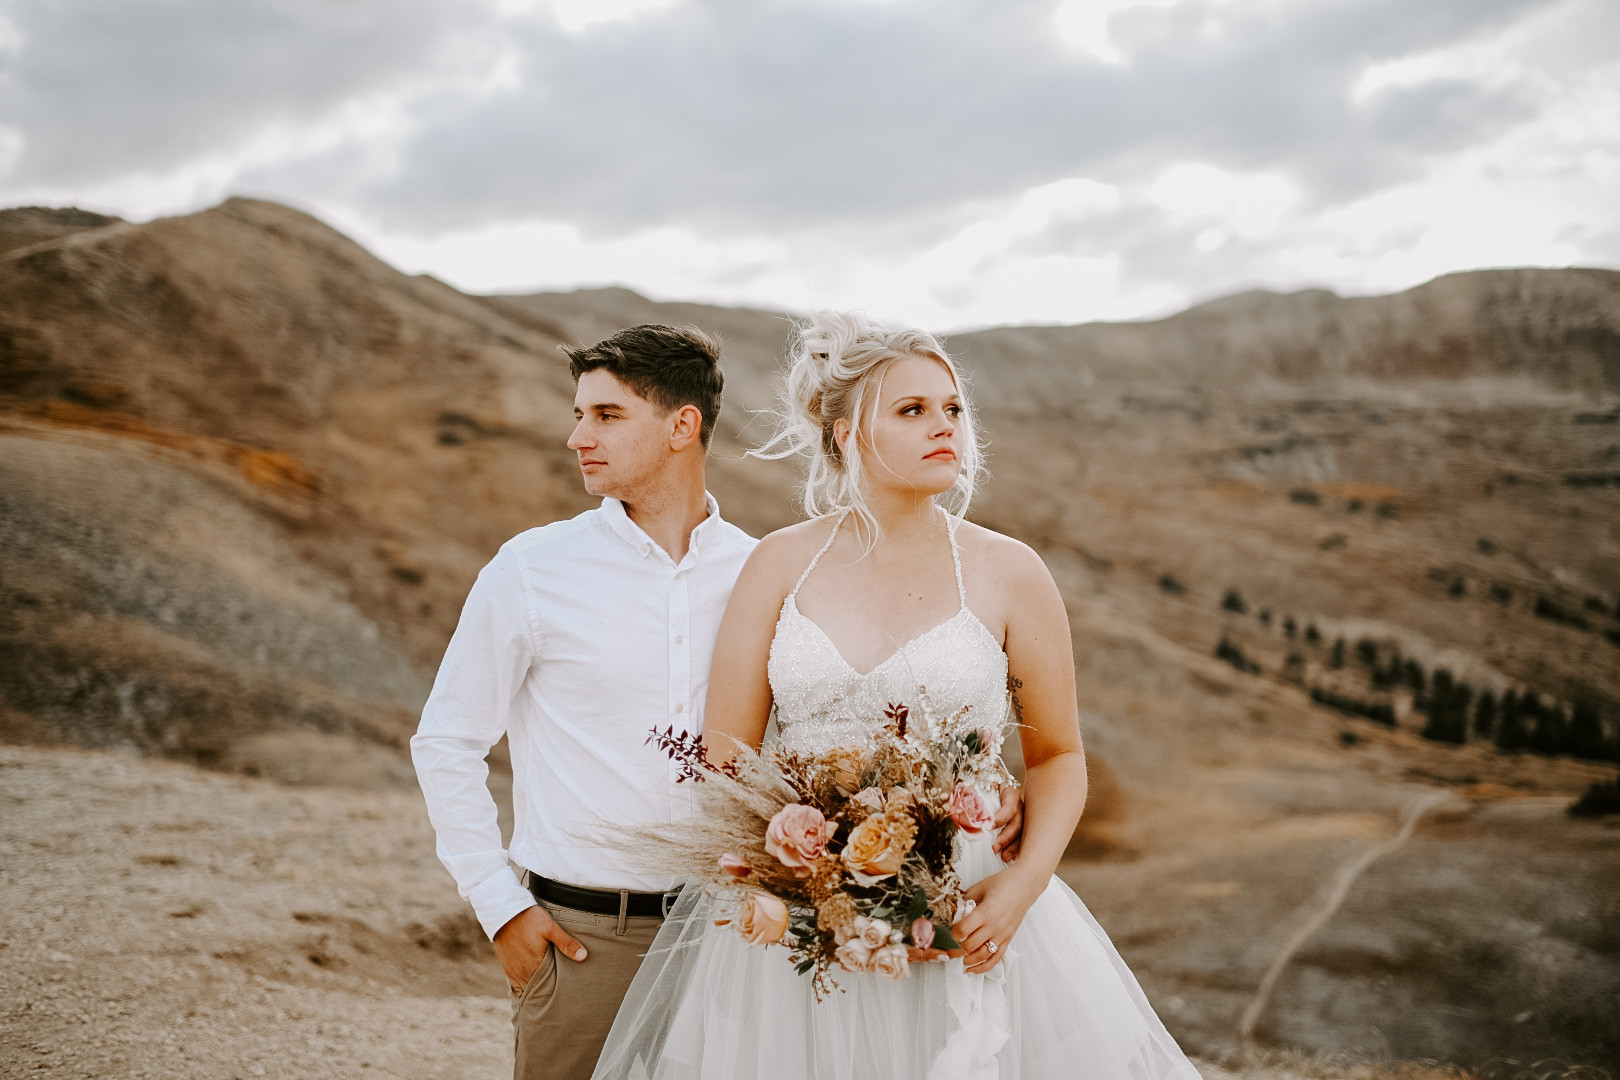 Destination-wedding-photographer-travel-elopement